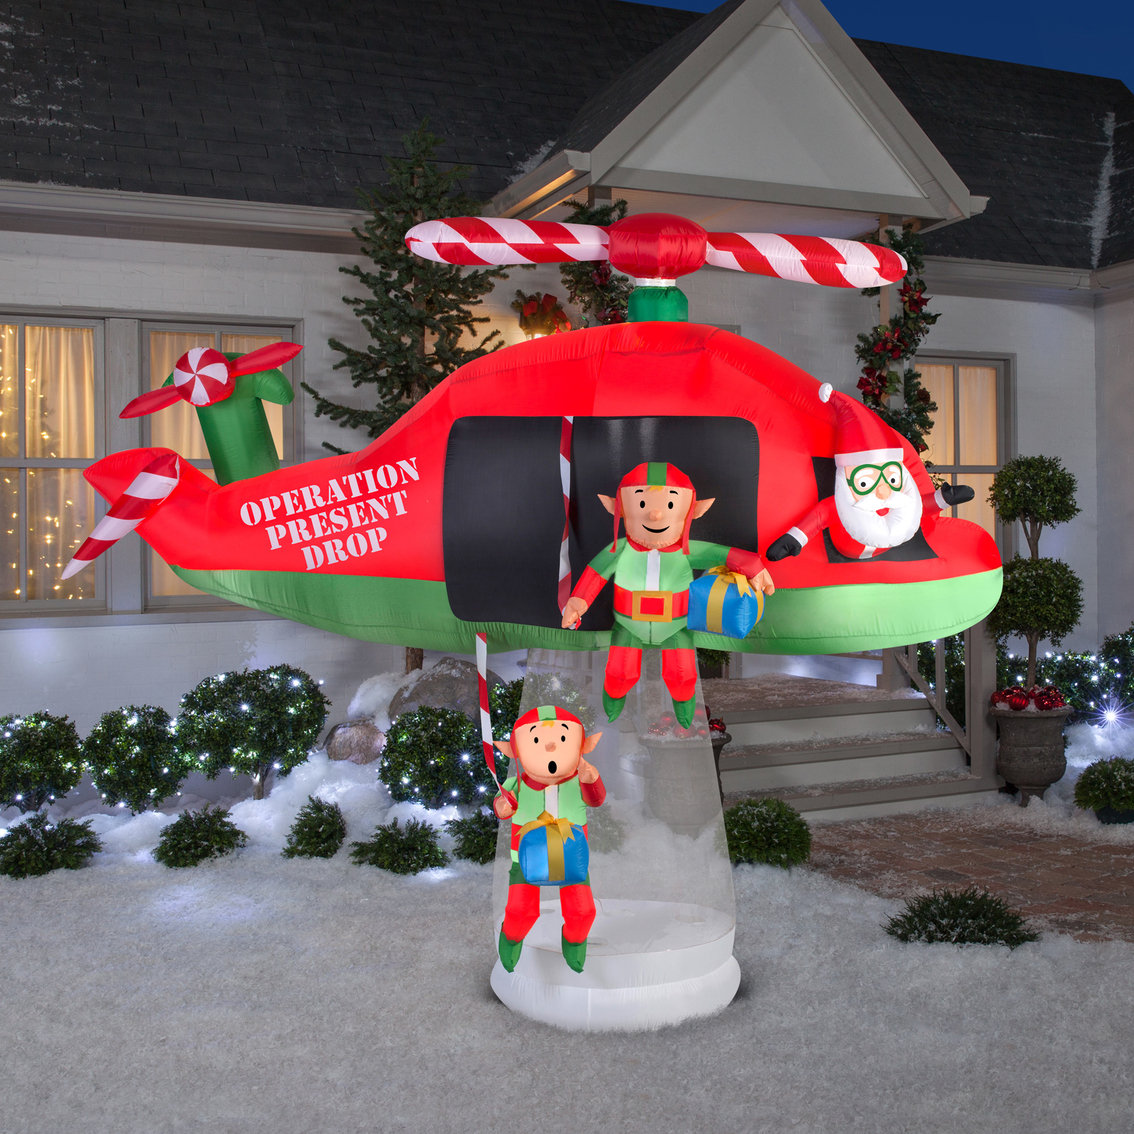 Gemmy Animated Airblown Santa And Elves In Helicopter Scene Inflatables Patio Garden Garage Shop The Exchange